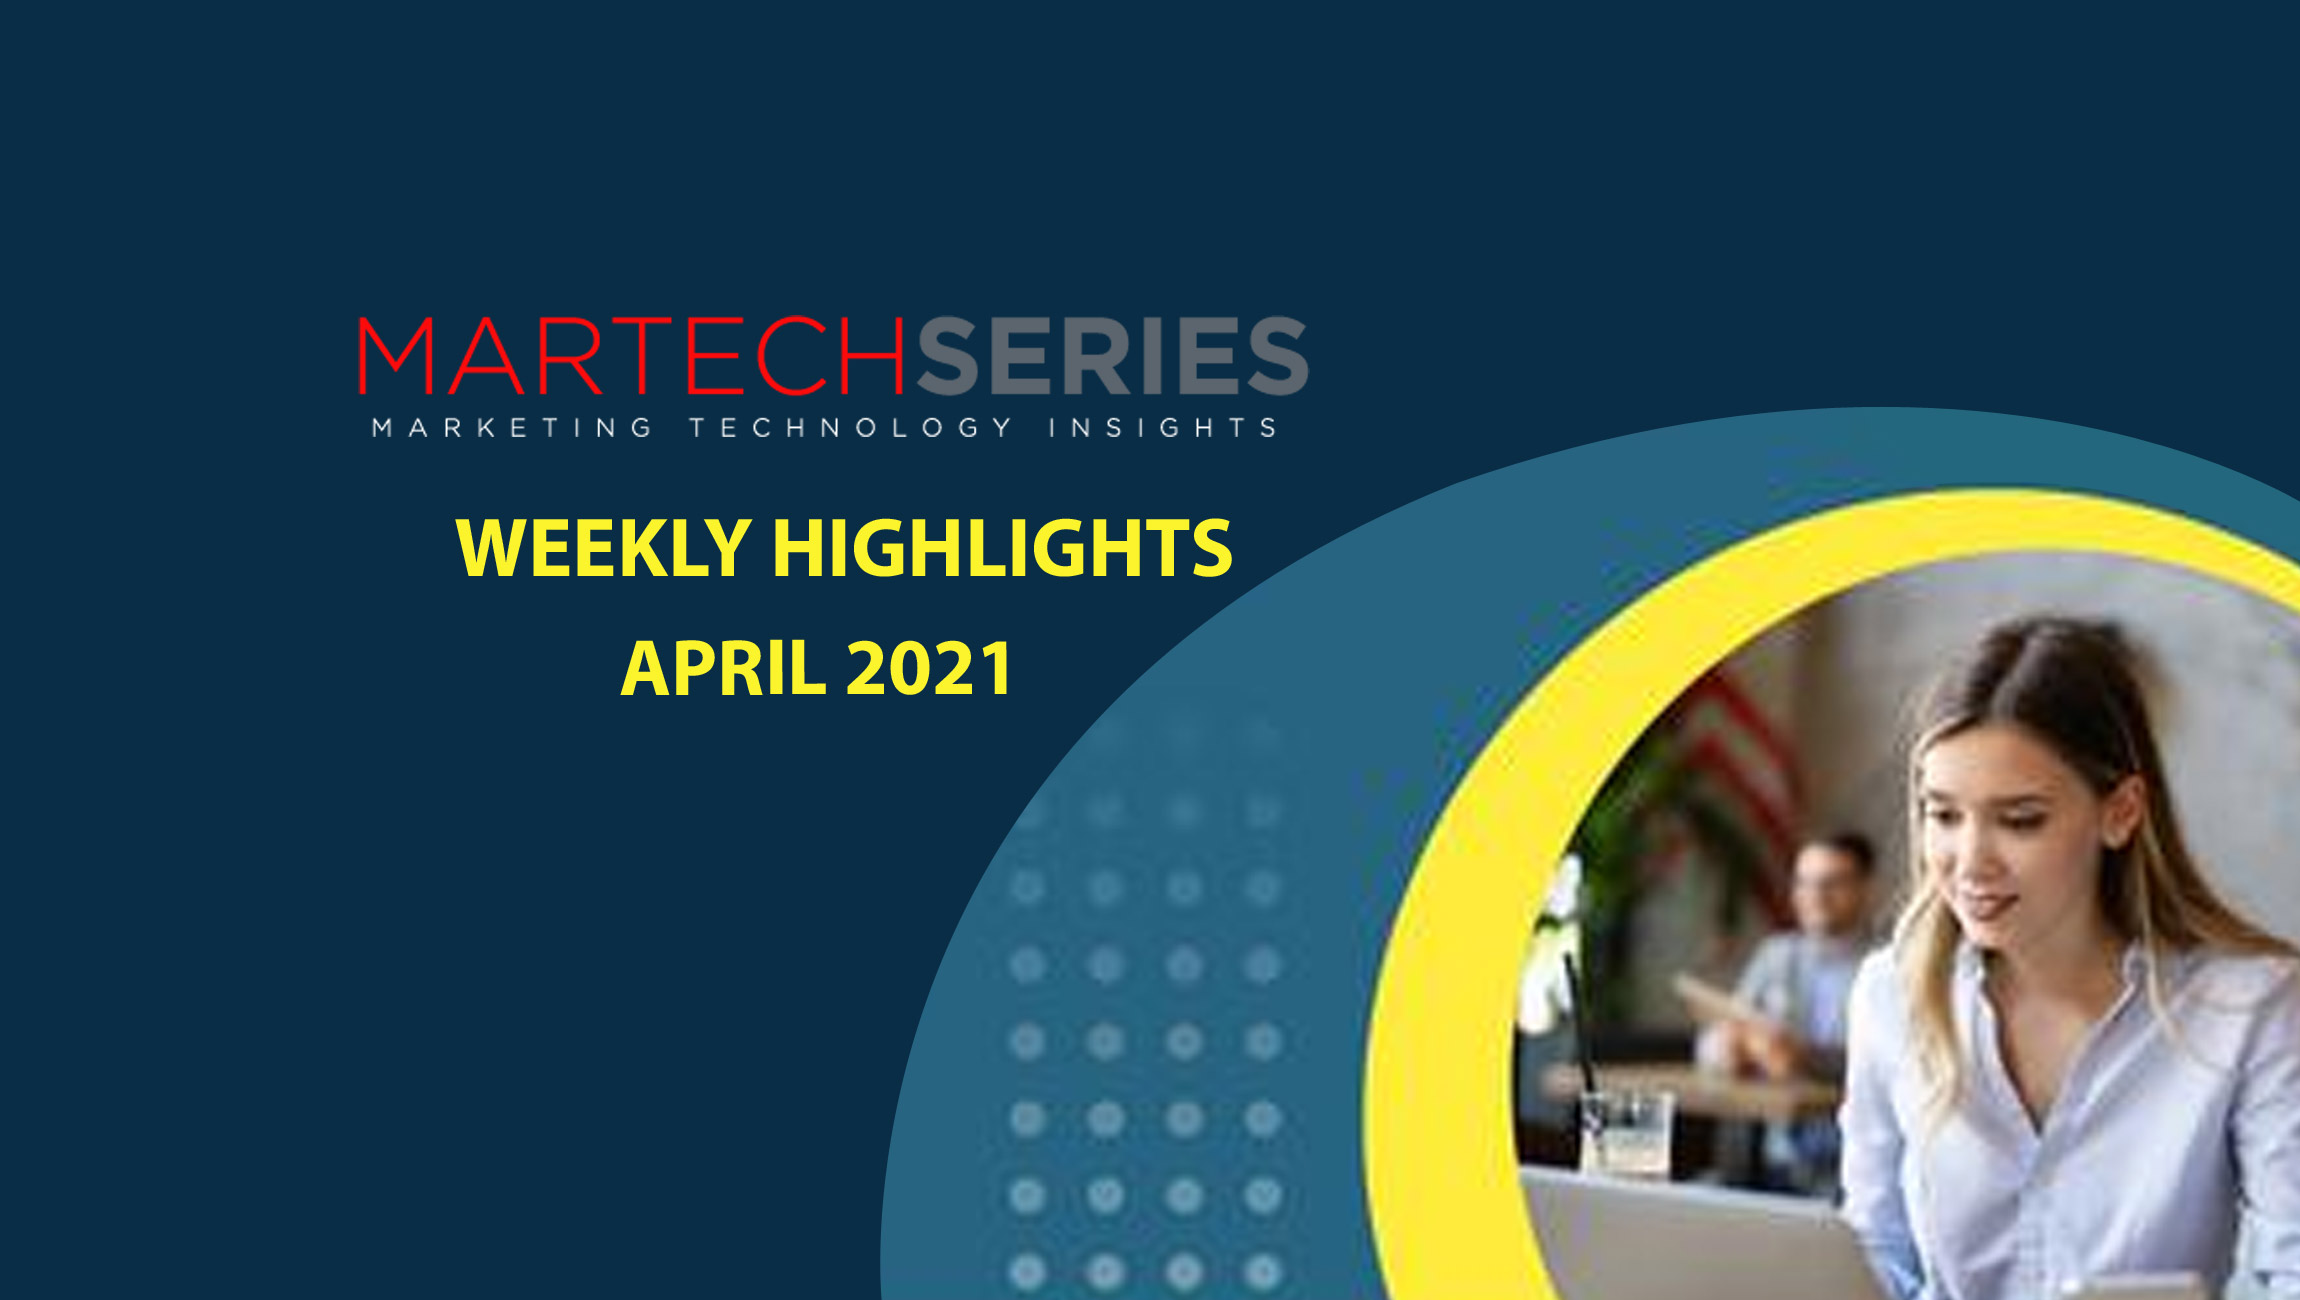 Marketing Technology Highlights of The Week: 12th-April-2021: Featuring SAP, ServiceNow, ZoomInfo, Zendesk (and lots more)!